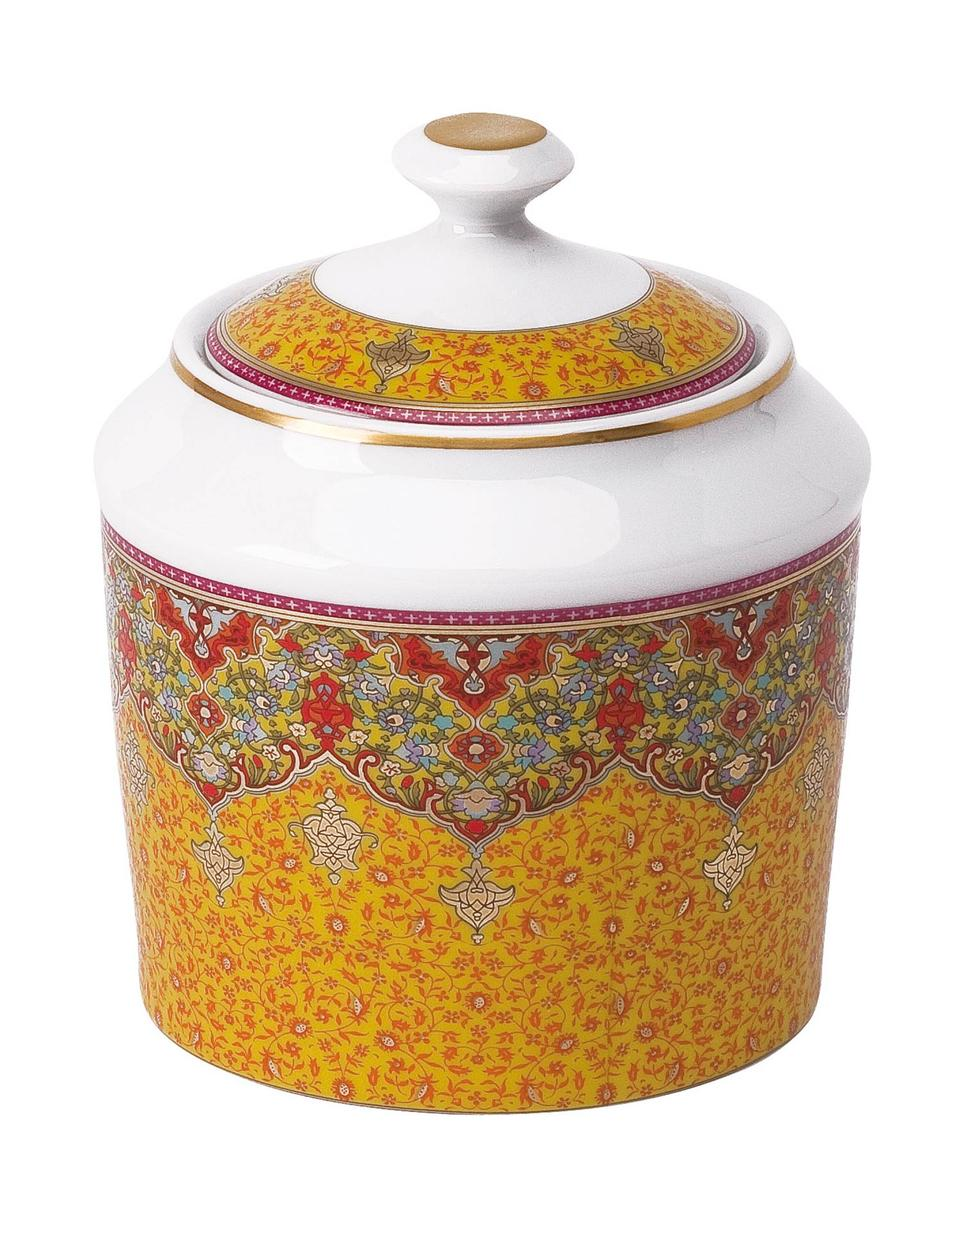 Philippe Deshoulieres Dhara red sugar bowl